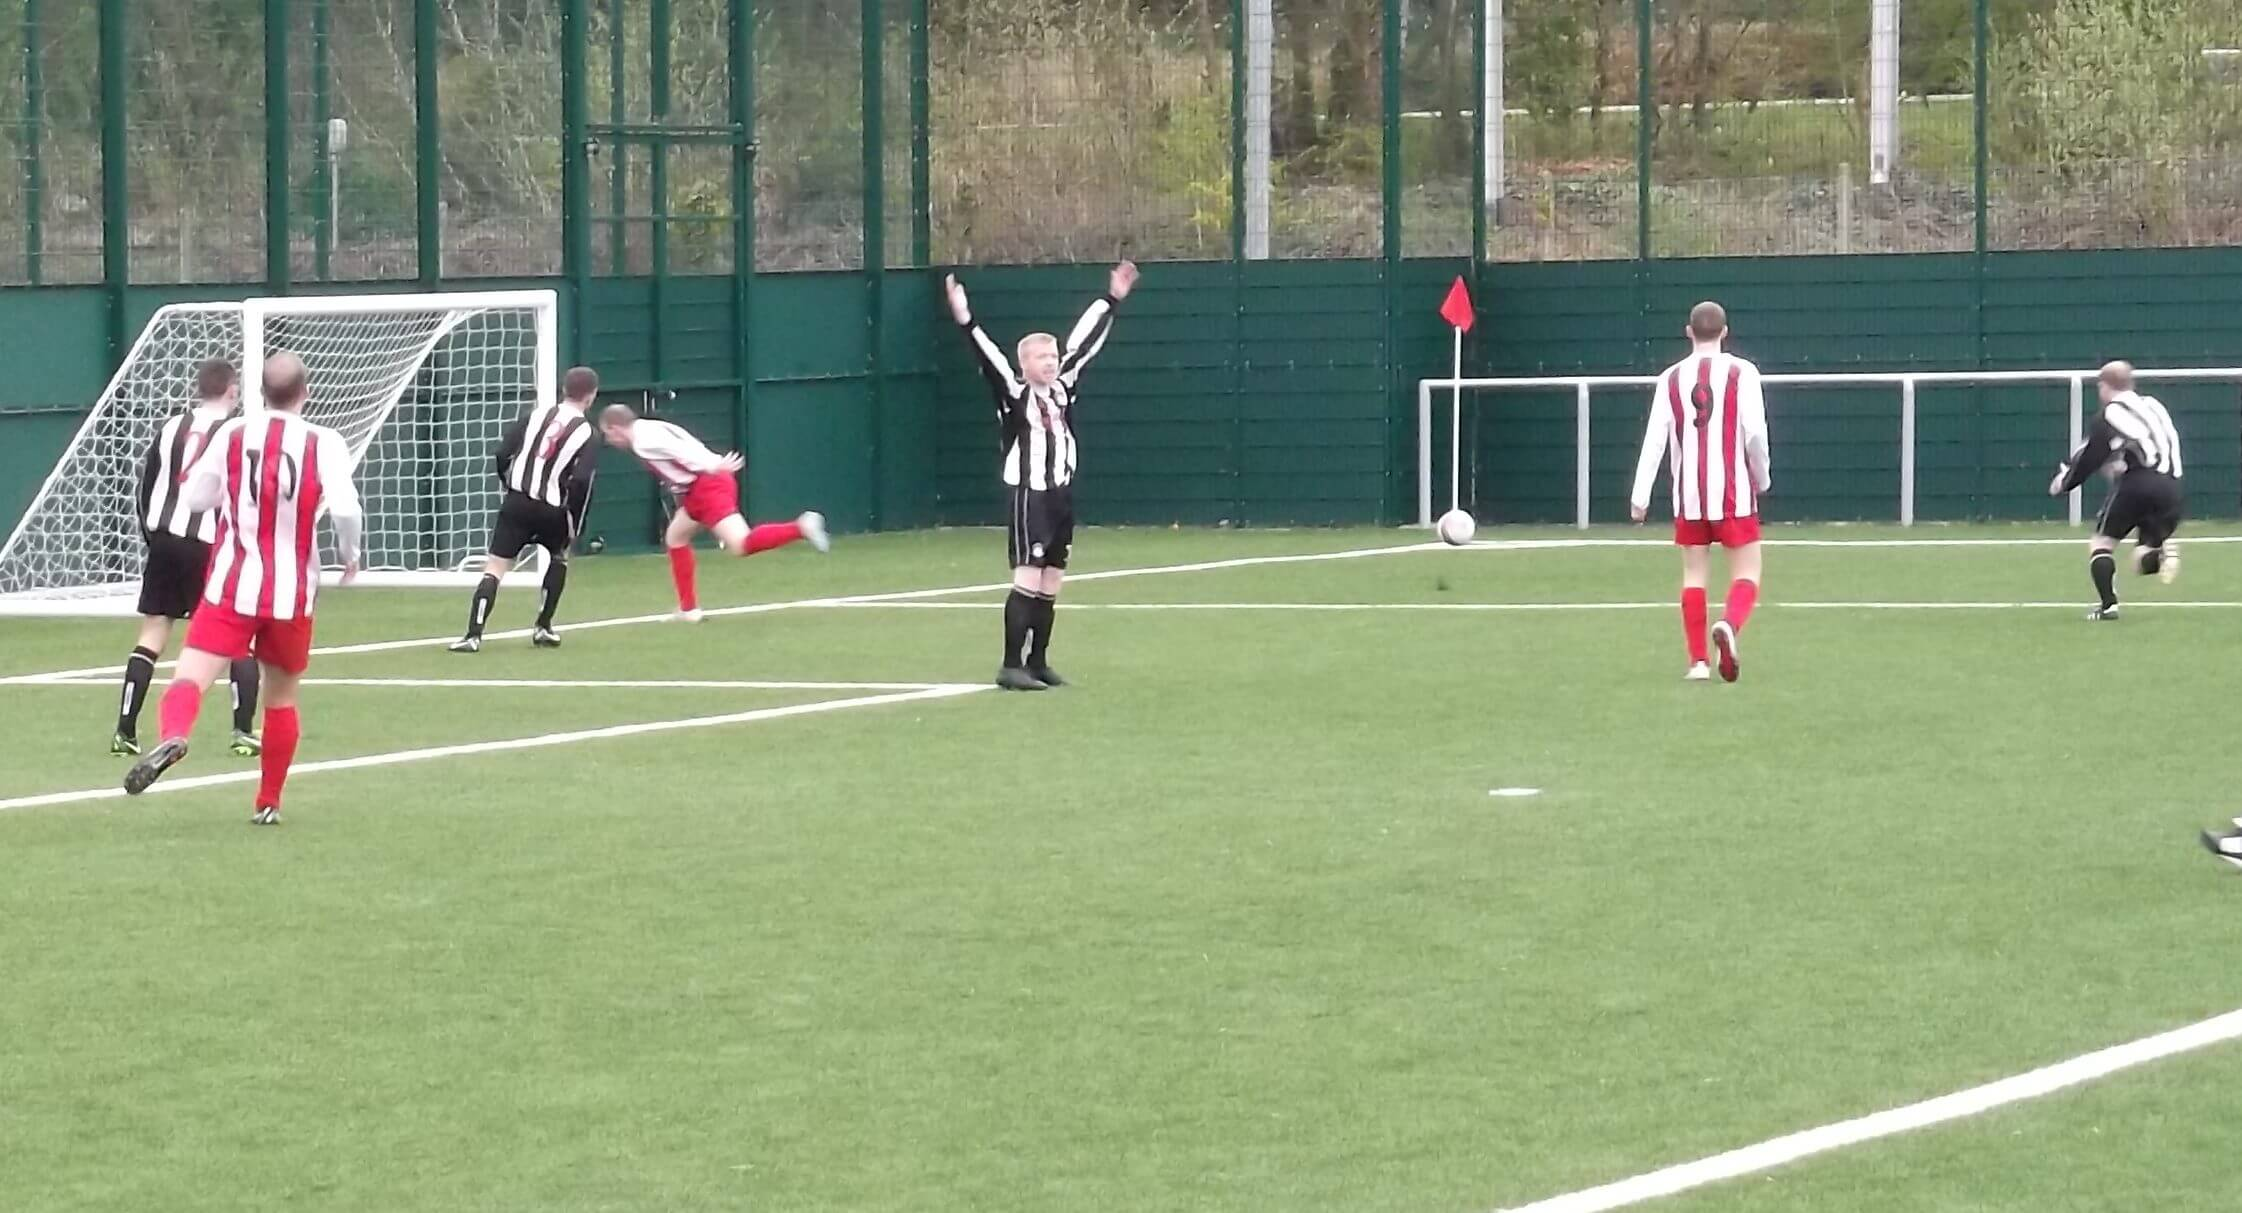 Port Glasgow claim in the run up to the third goal